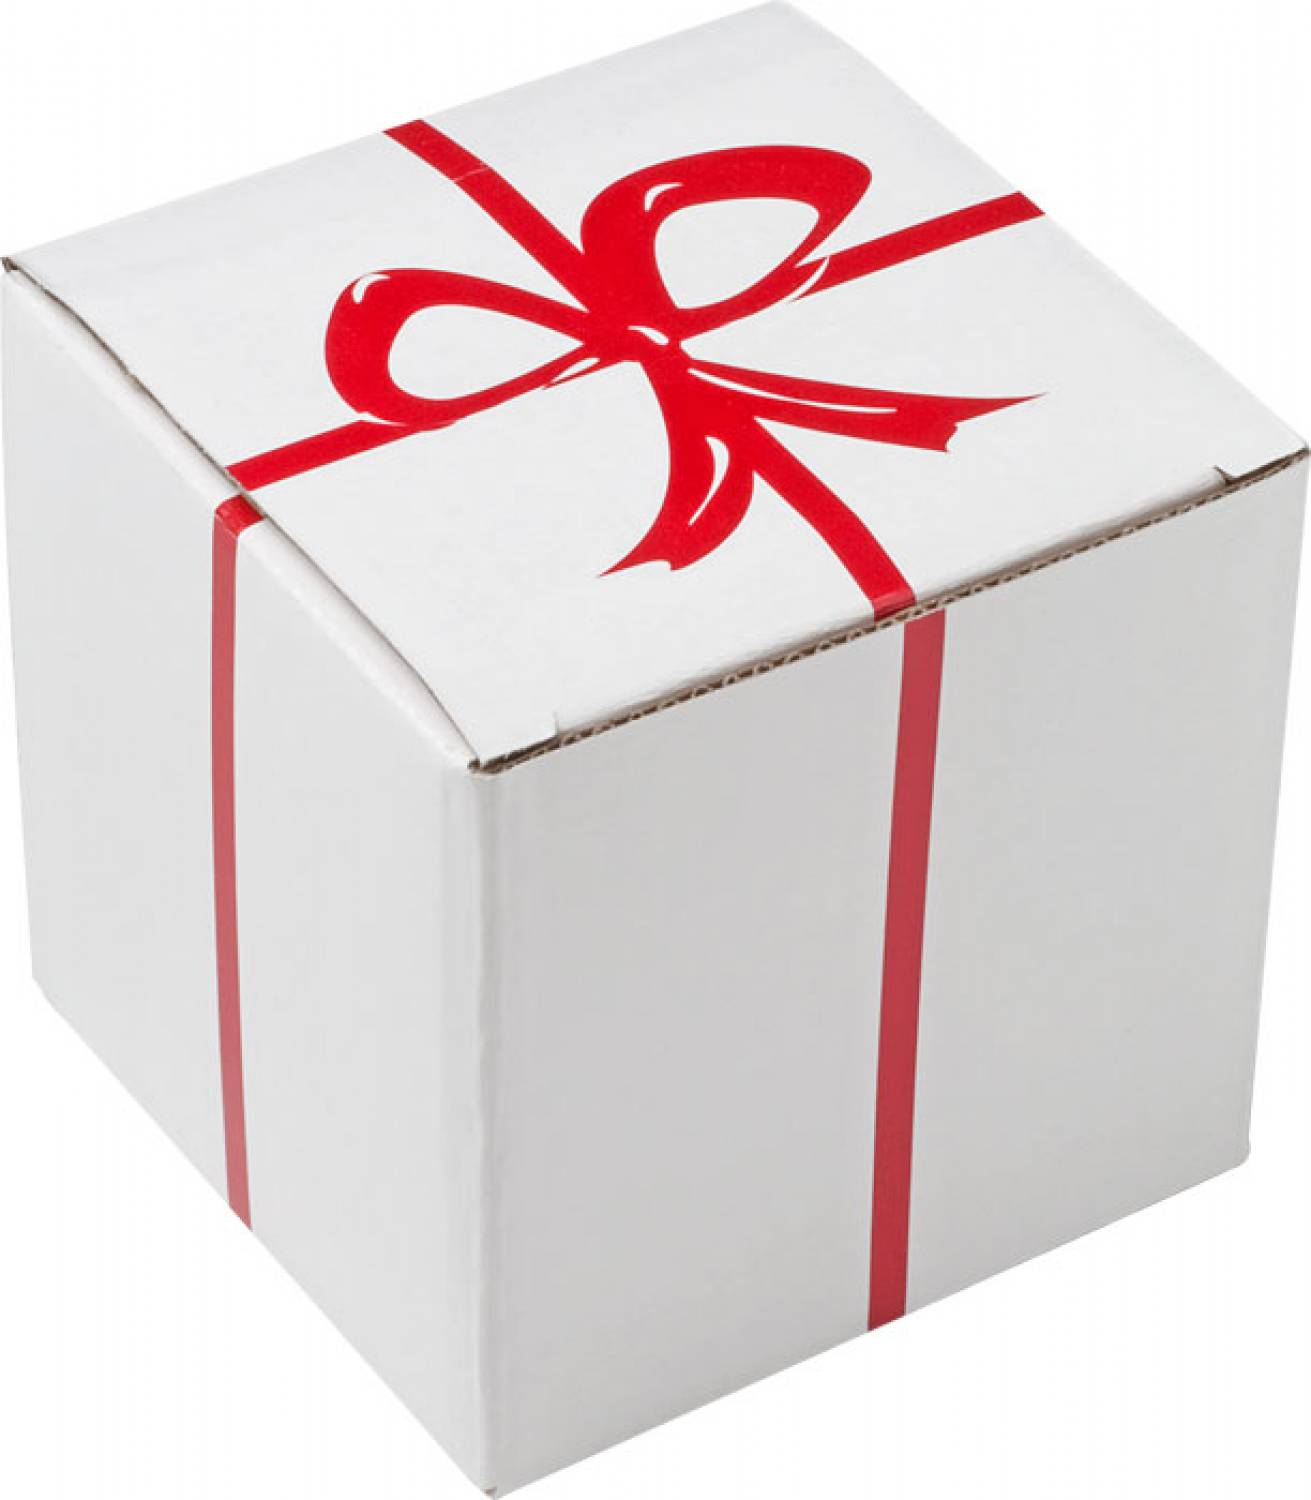 Cheap gift boxes for buy mugs goods and gifts │